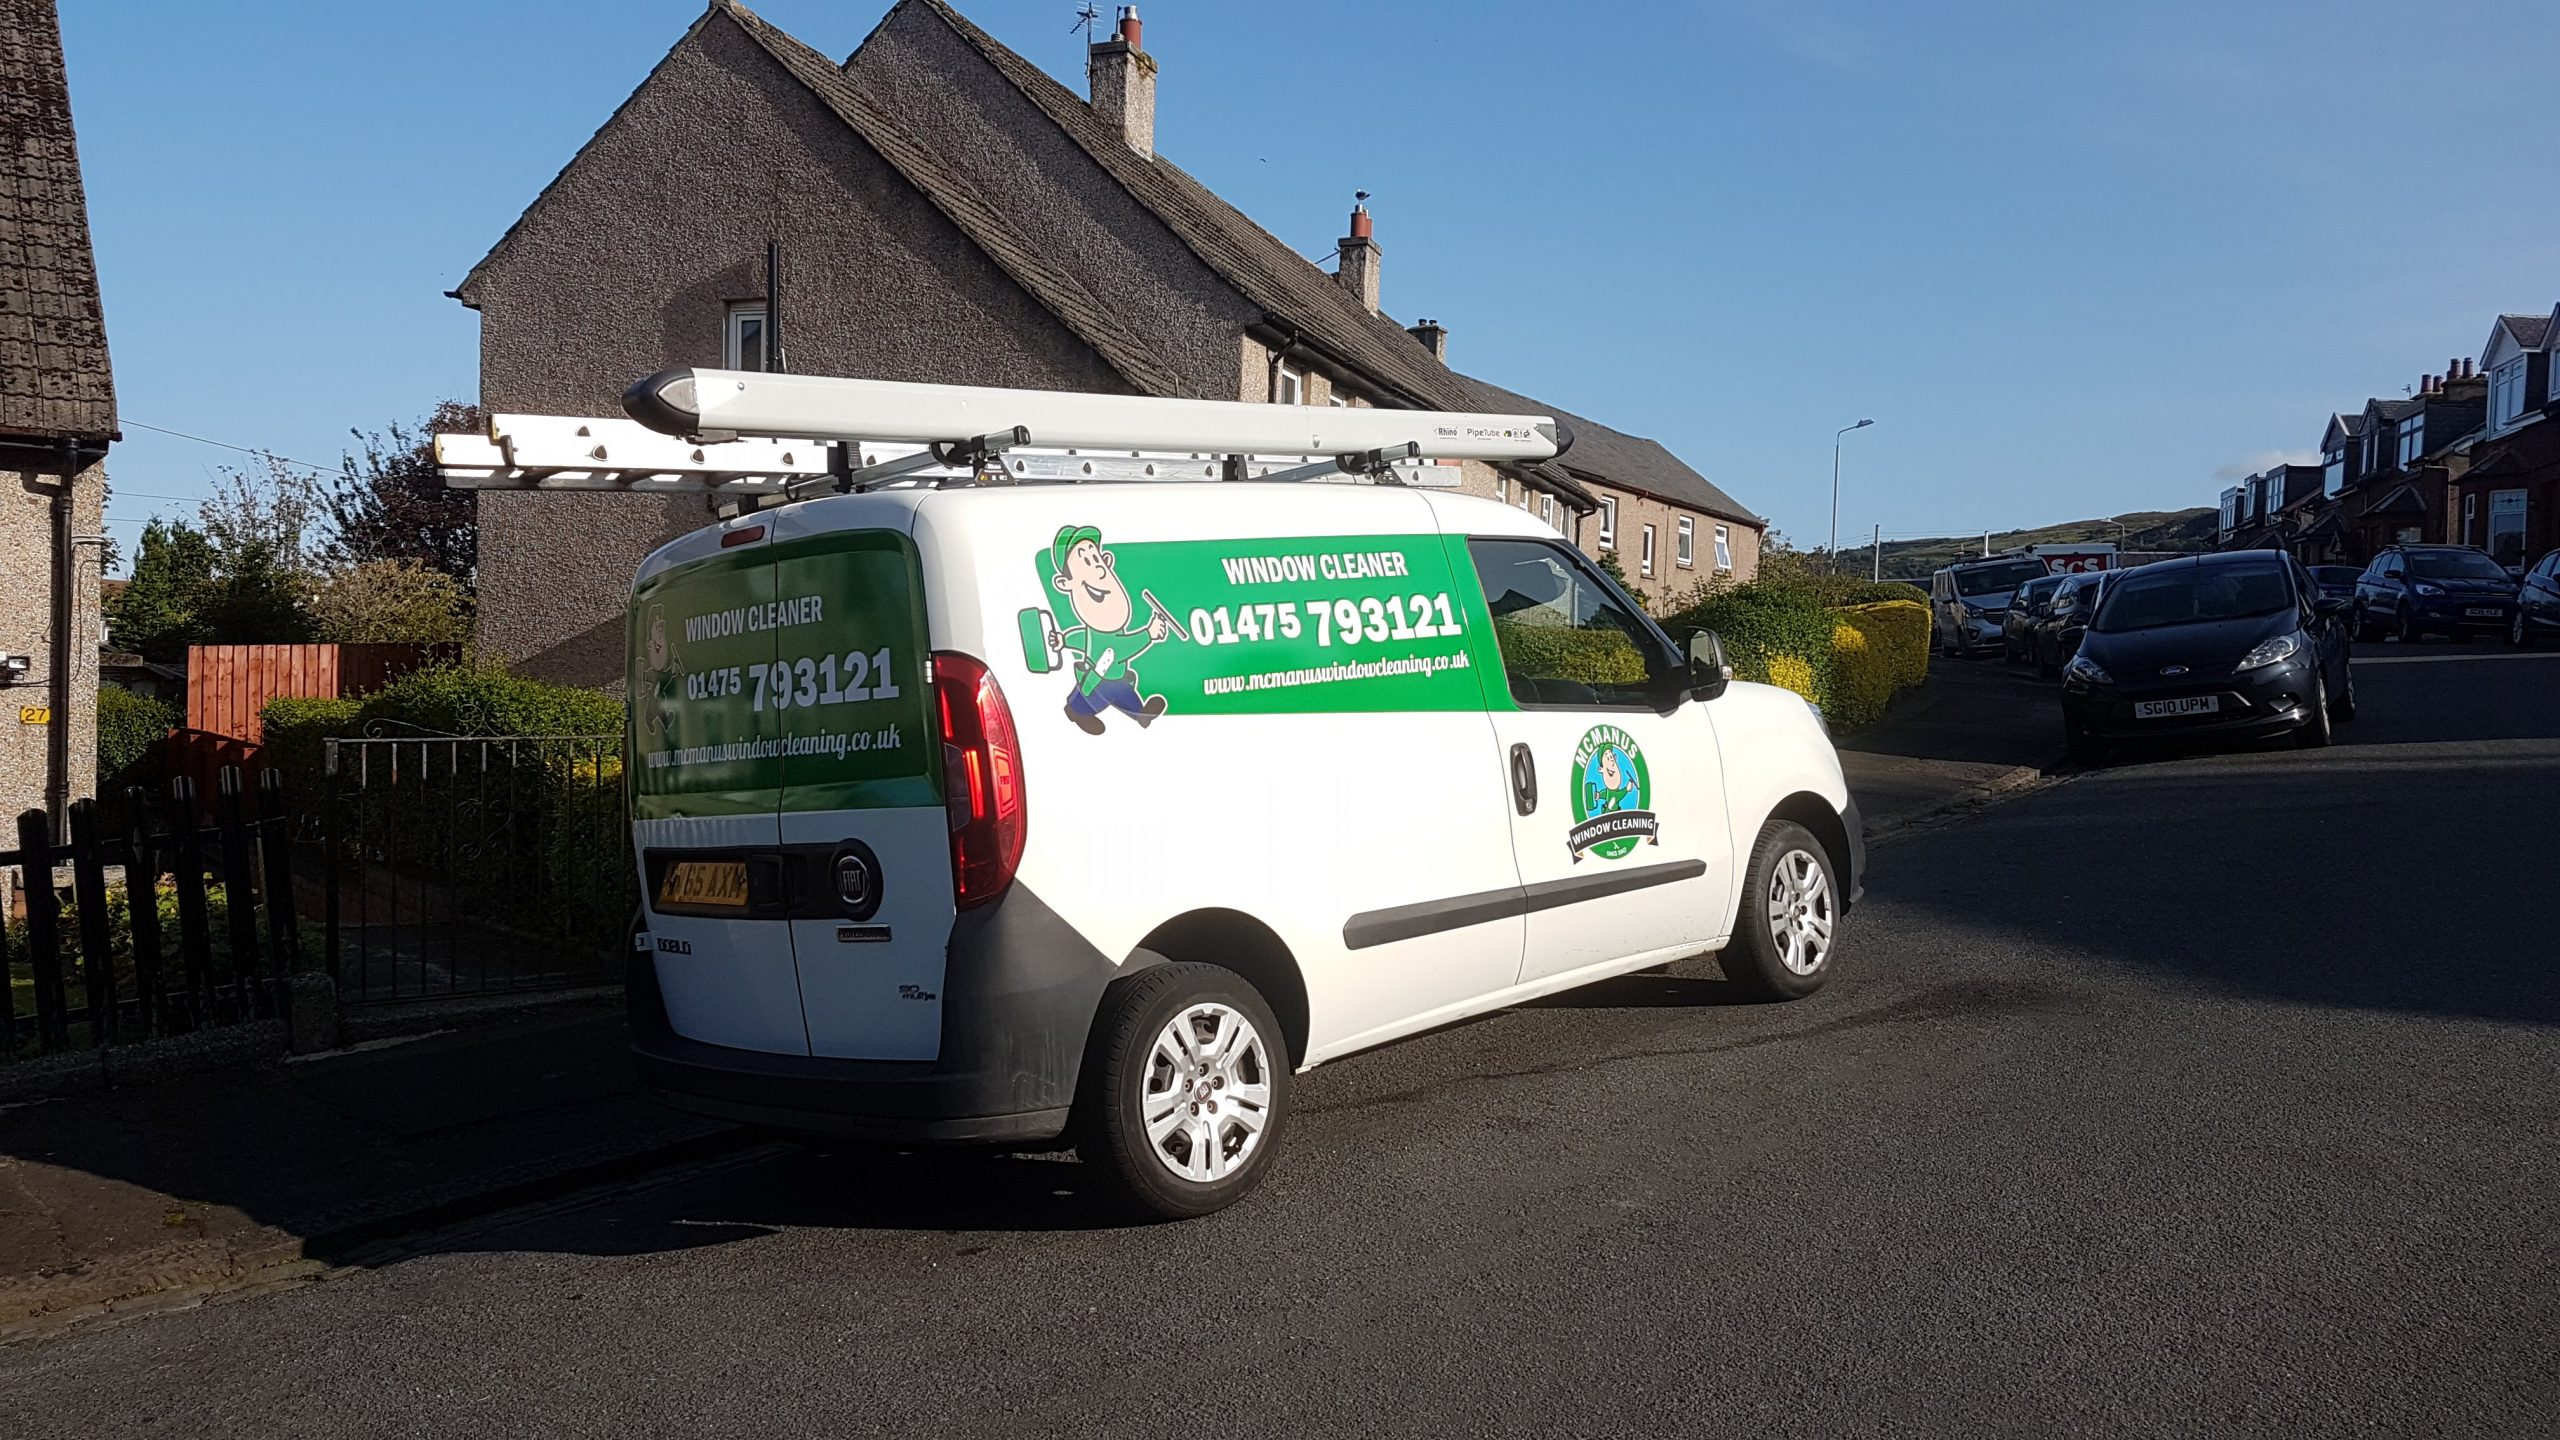 This is an image of one of our vans